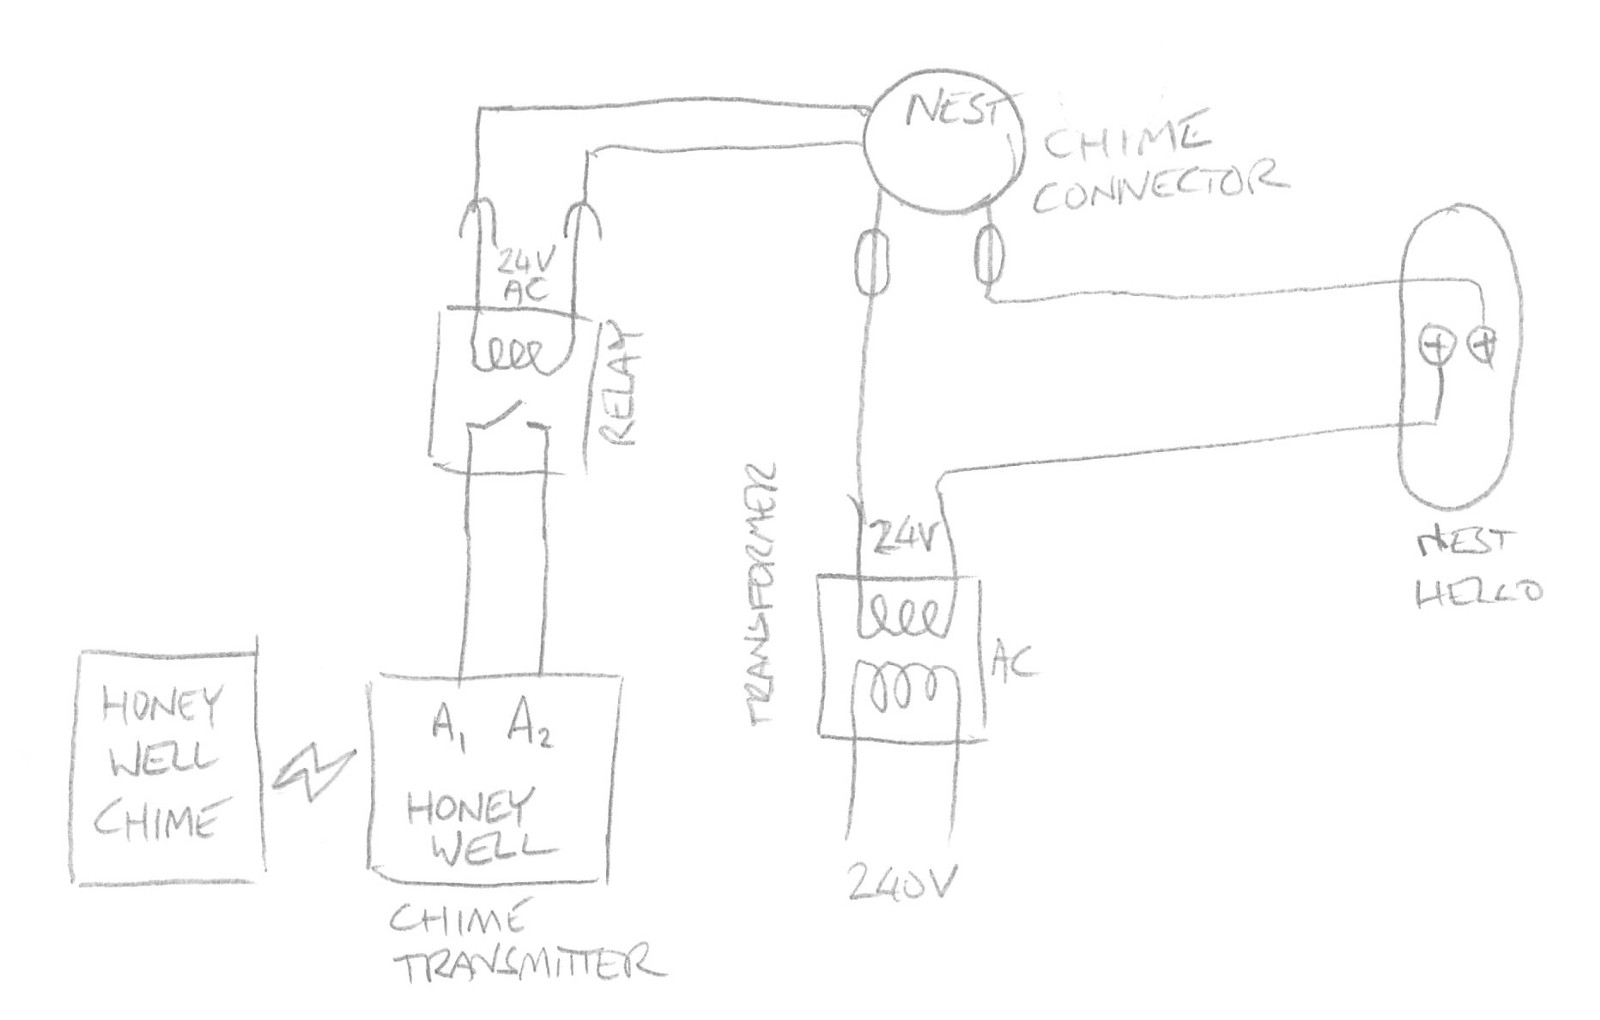 Wiring Diagram For The Transformer For The Transformer For